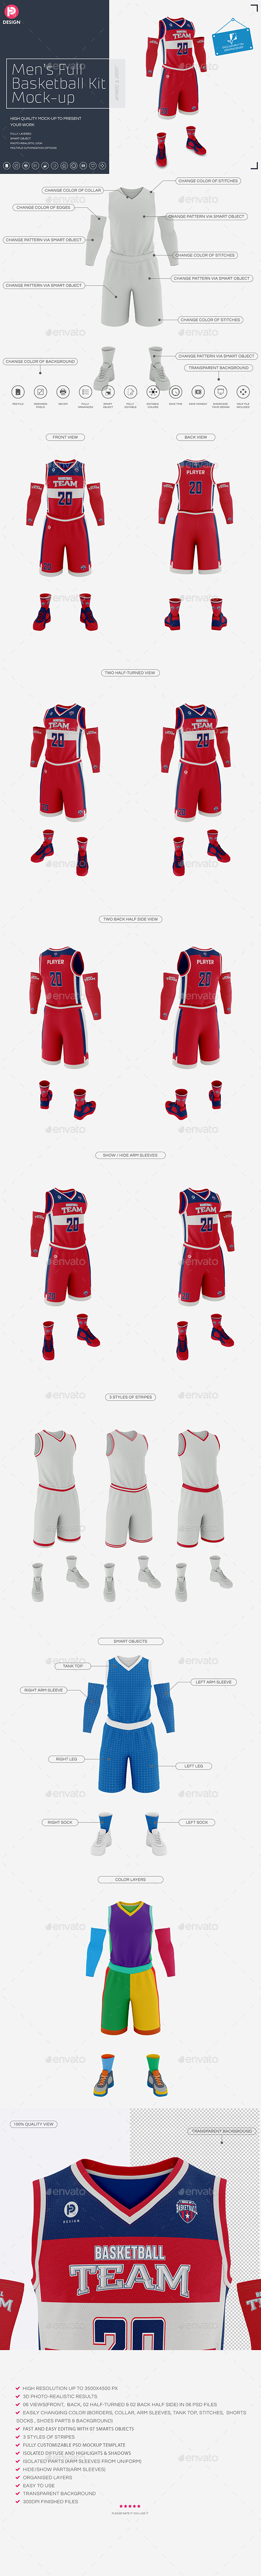 GraphicRiver Men's Full Basketball Kit V-Neck Jersey Mock-up 21108237